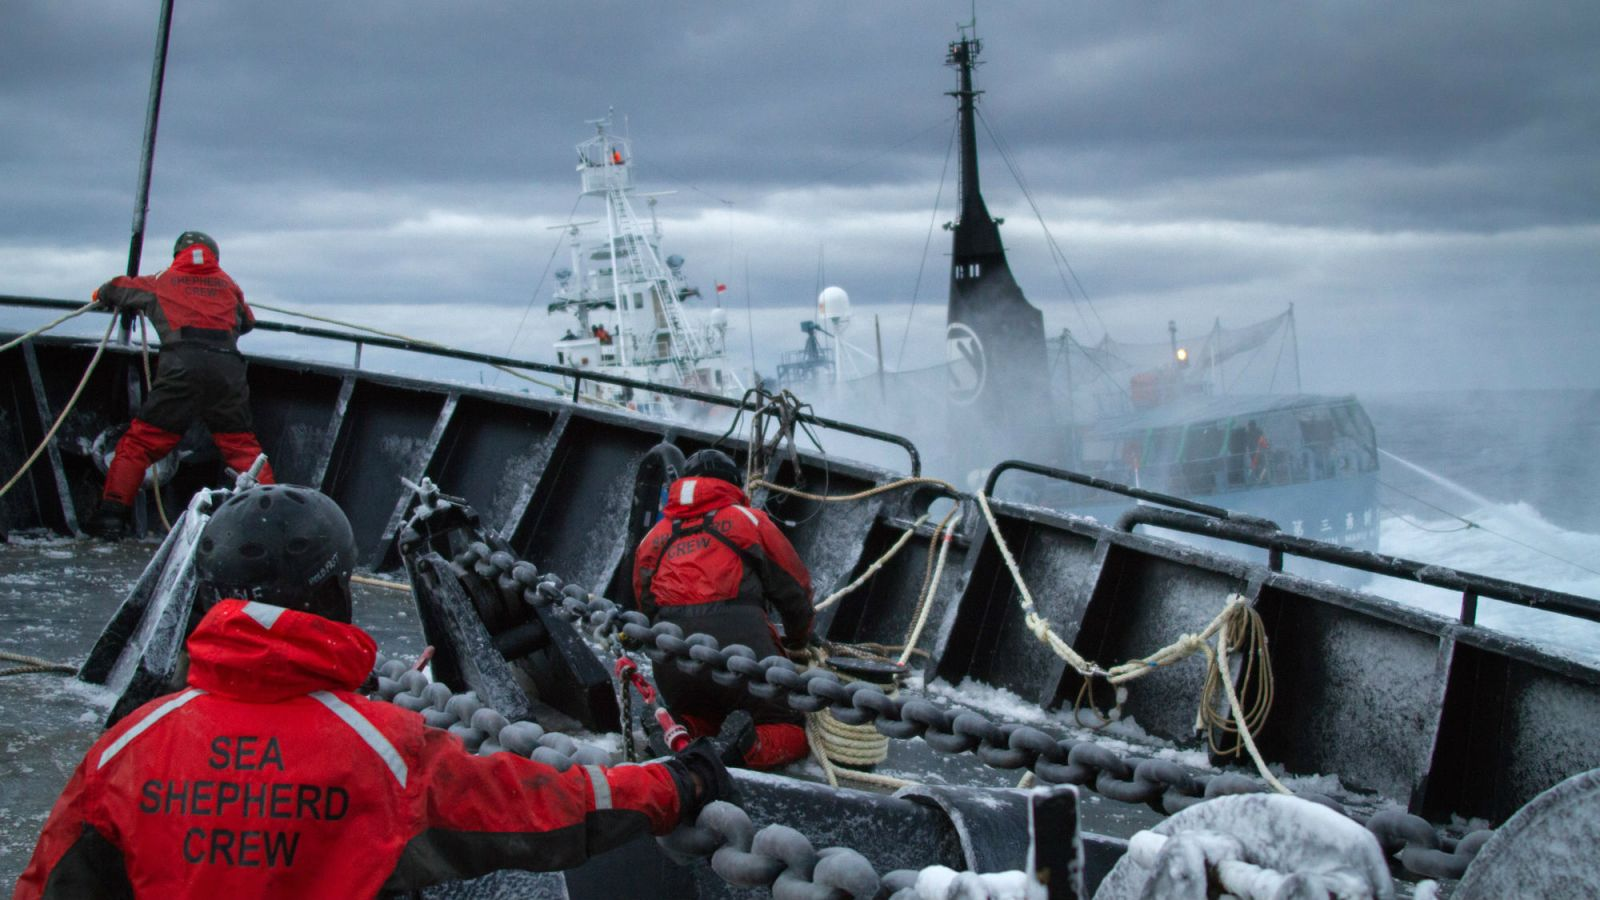 Sea Shepherd ship